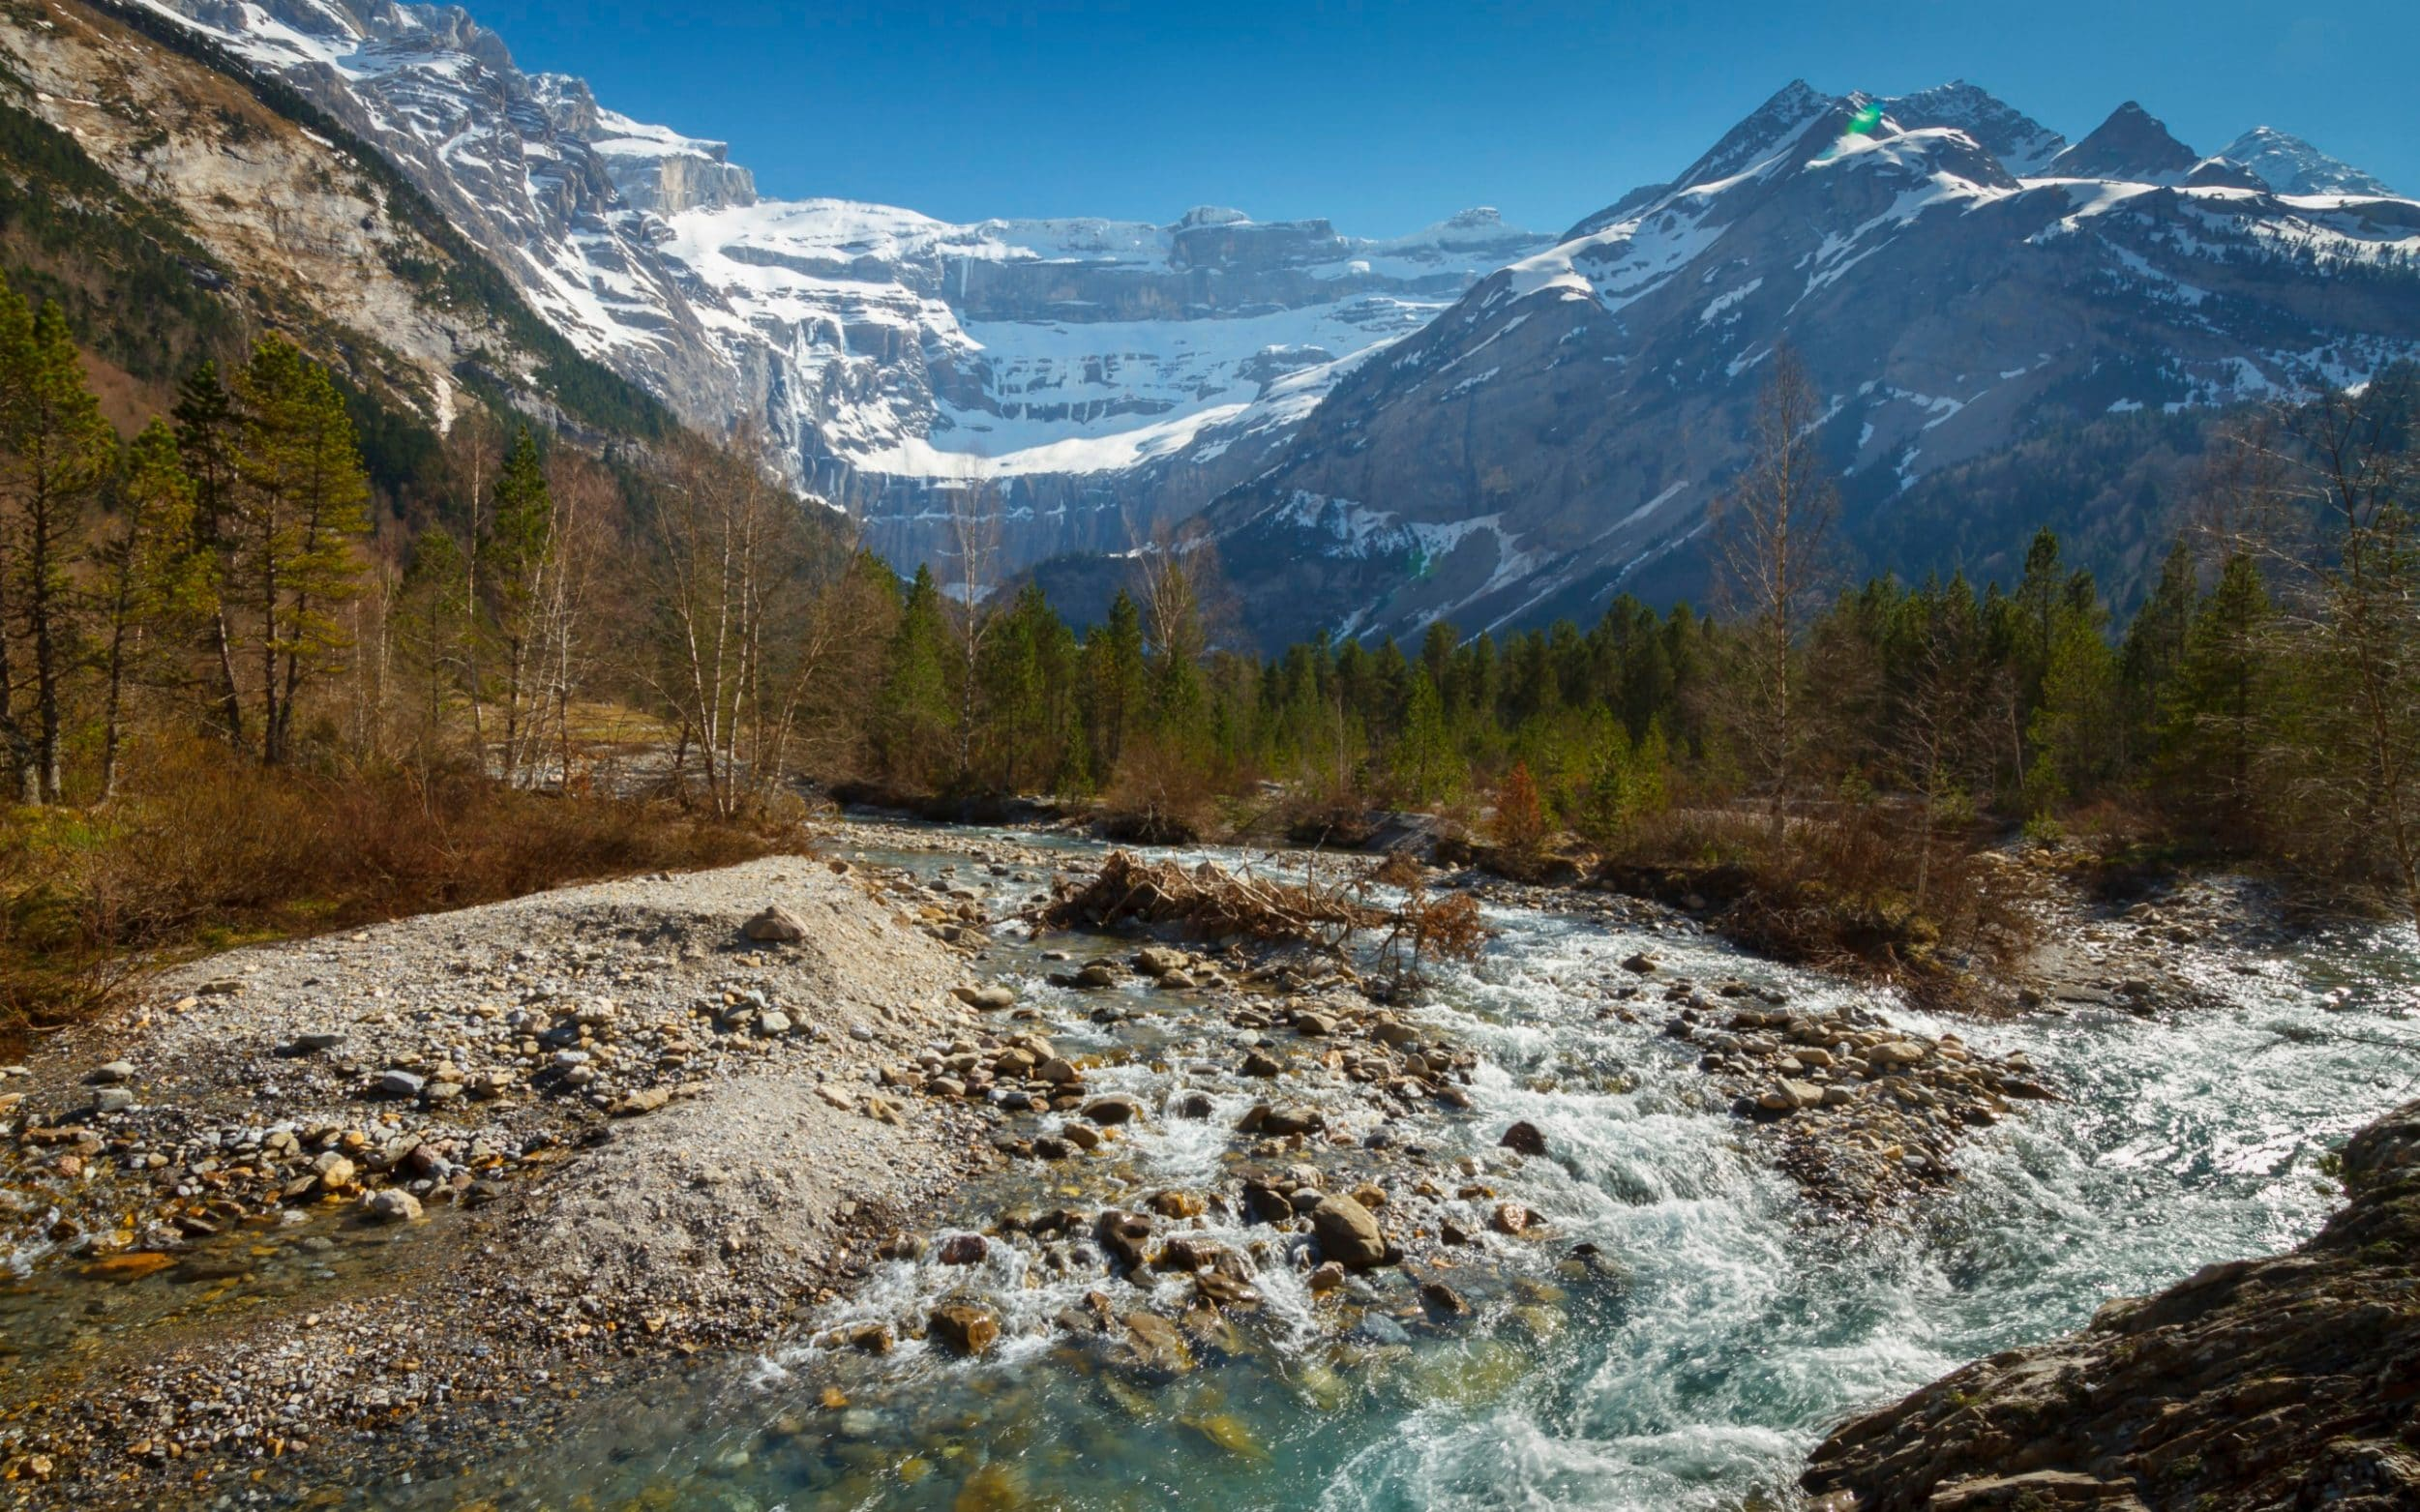 Pyrenees glaciers to disappear within 30 years, scientists warn